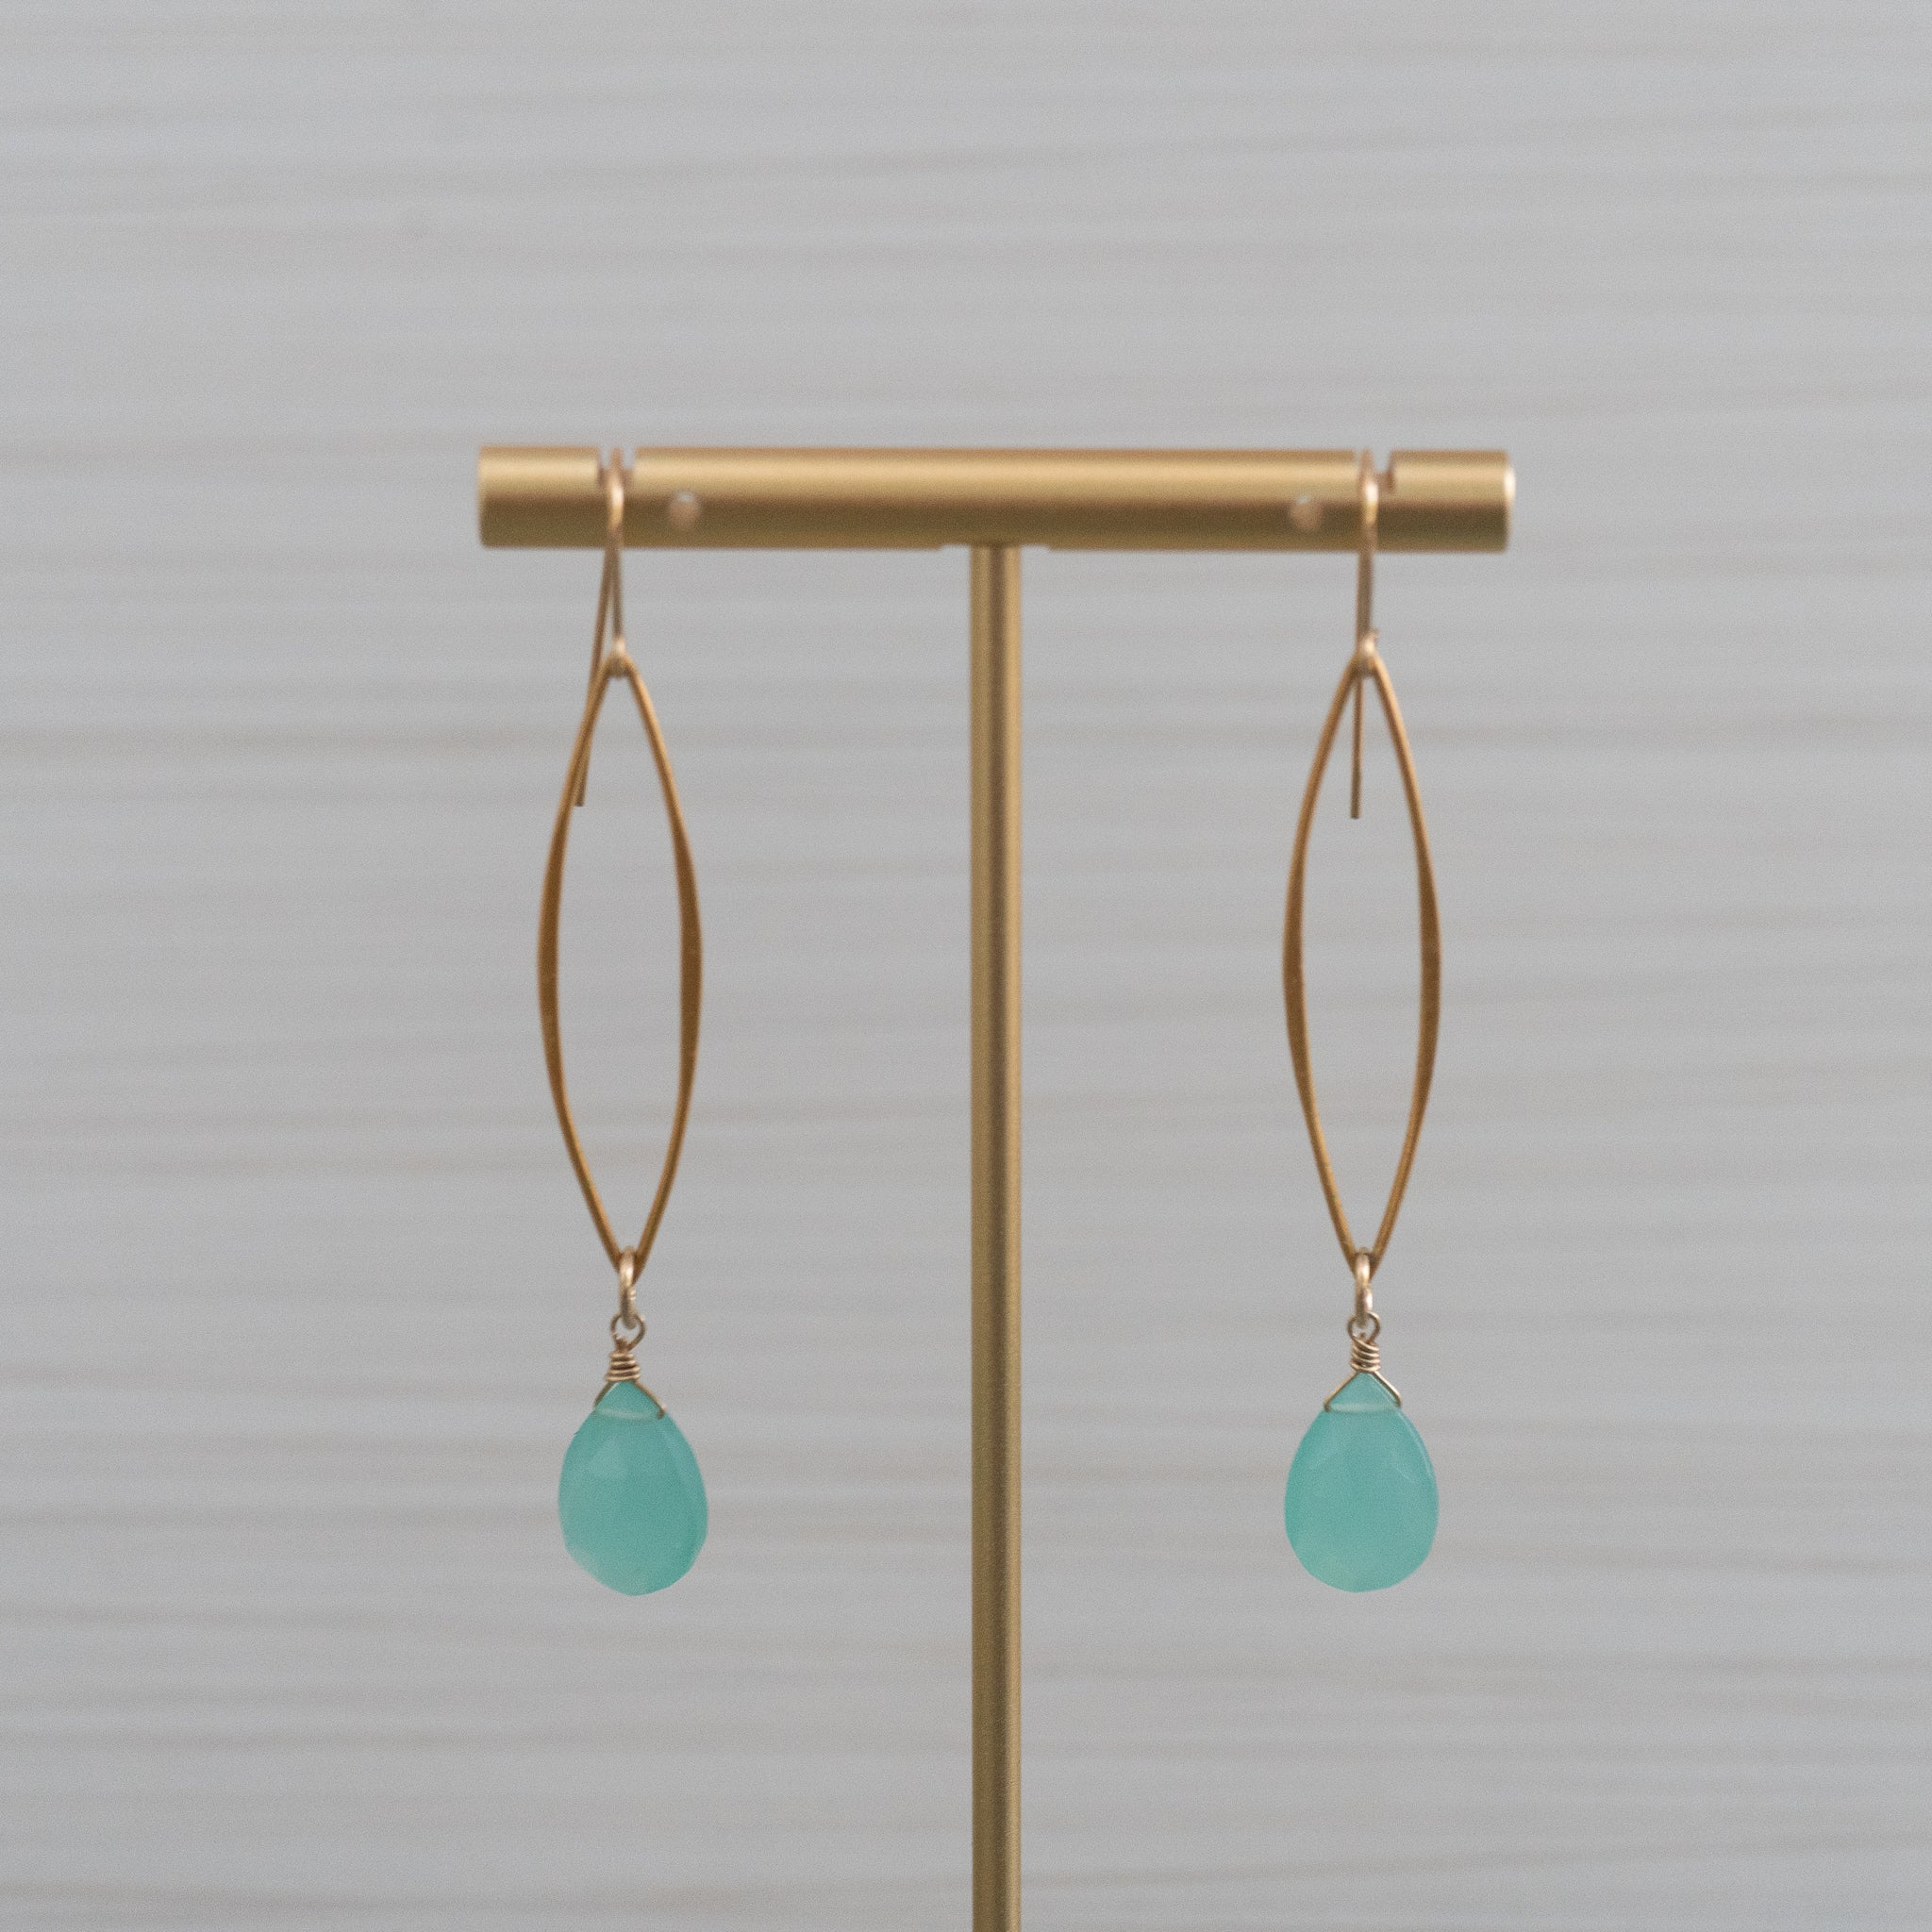 blue gemstones long marquee gold earrings  Edit alt text